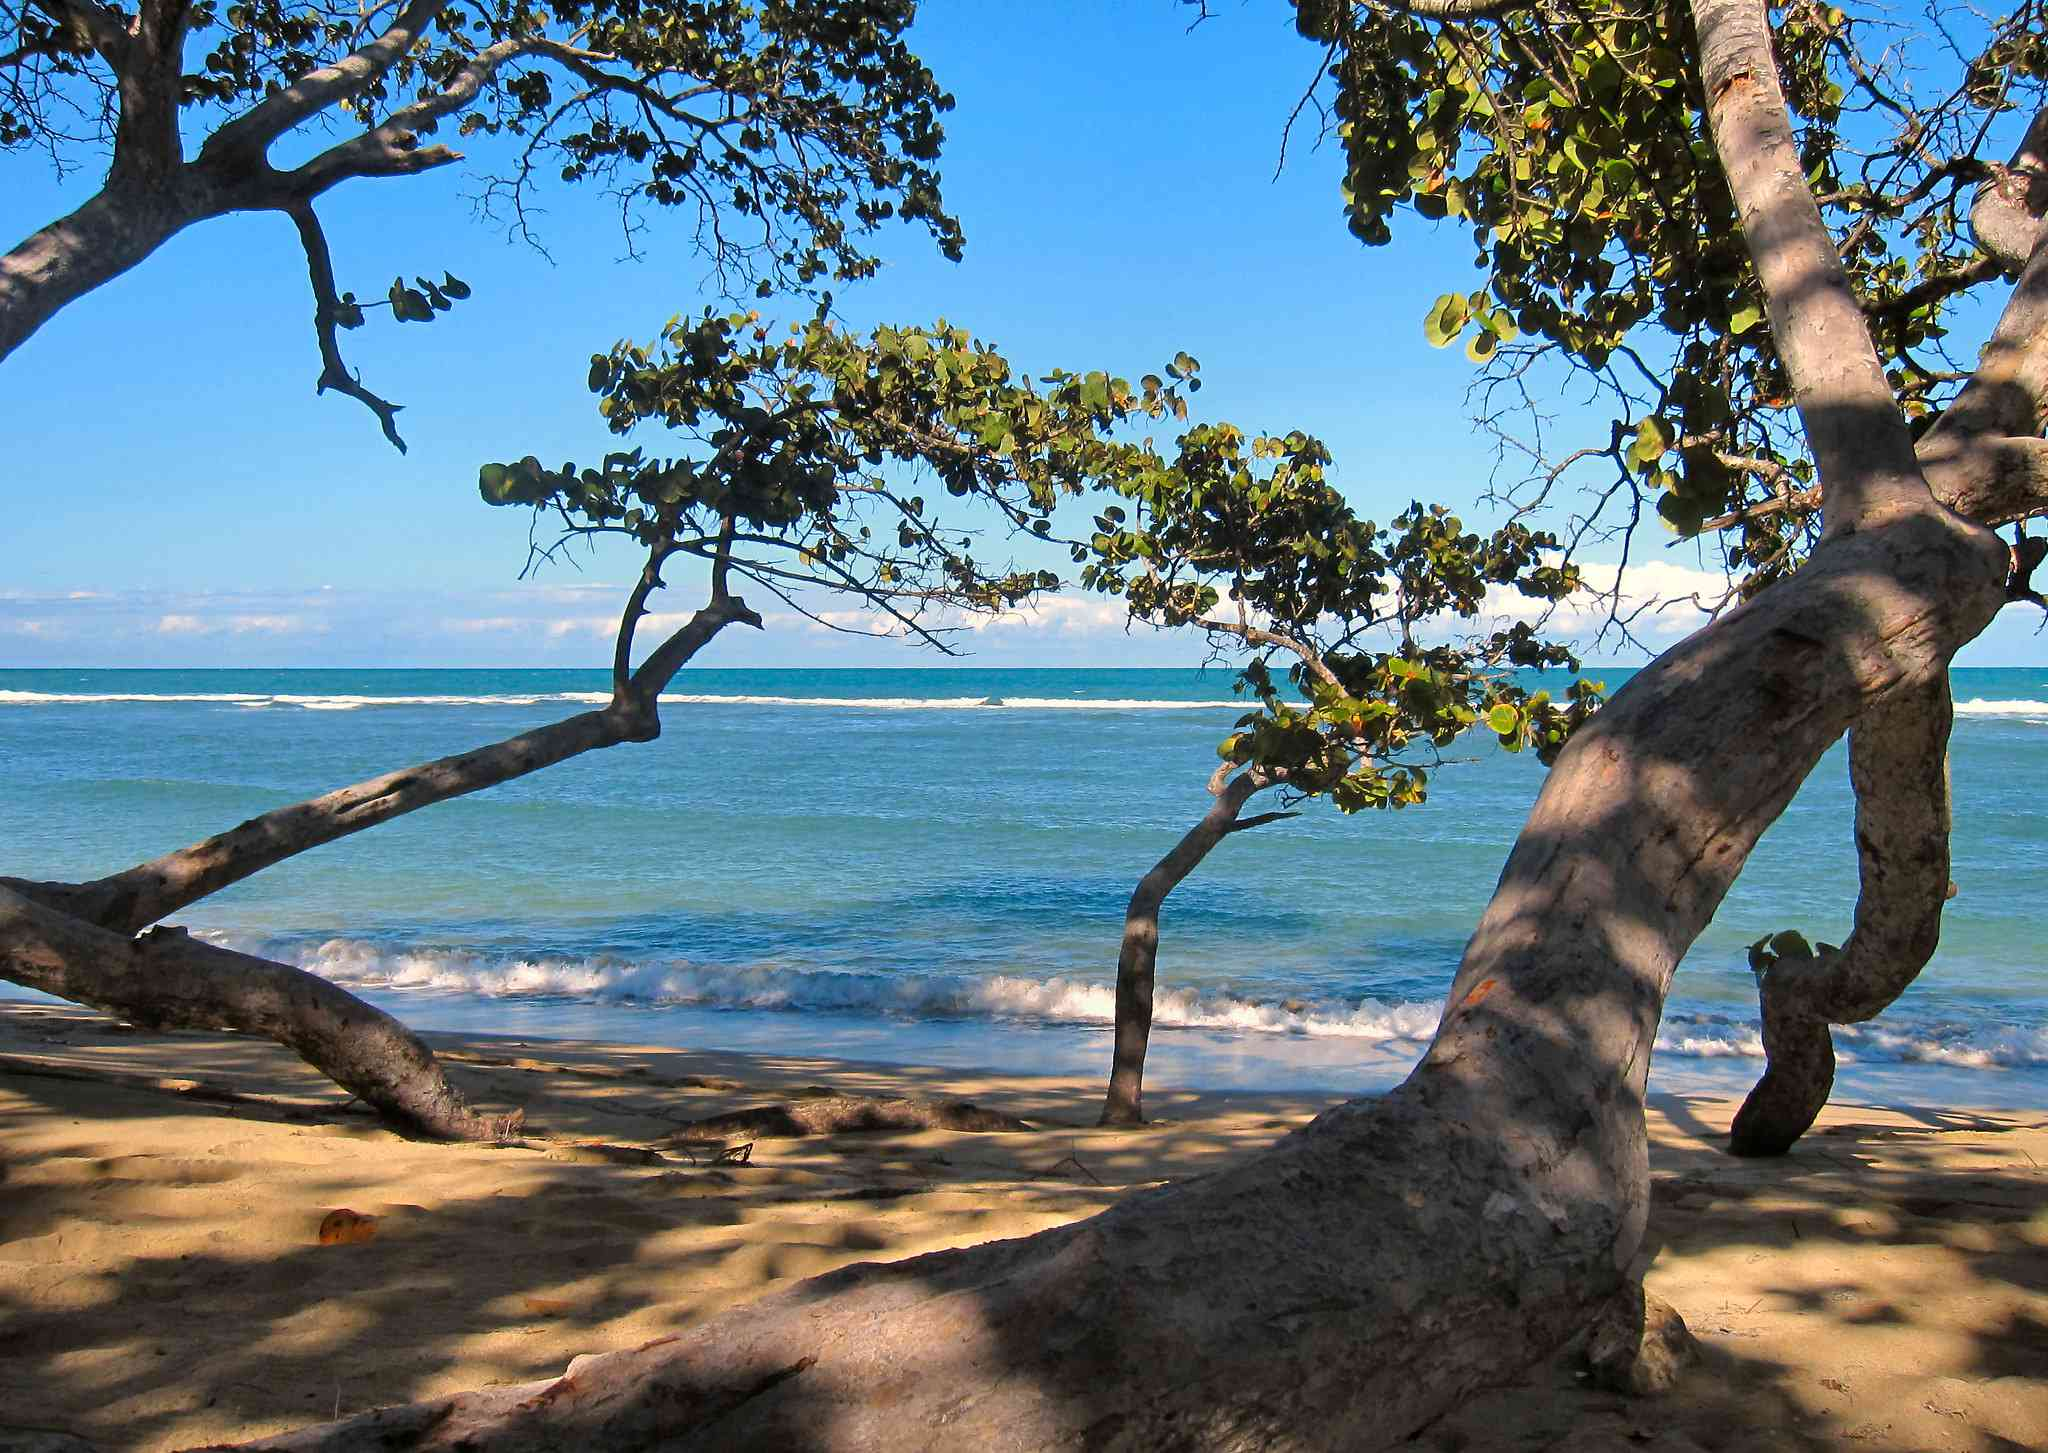 trees bent by wind on Puerto Plata beach in Dominican Republic